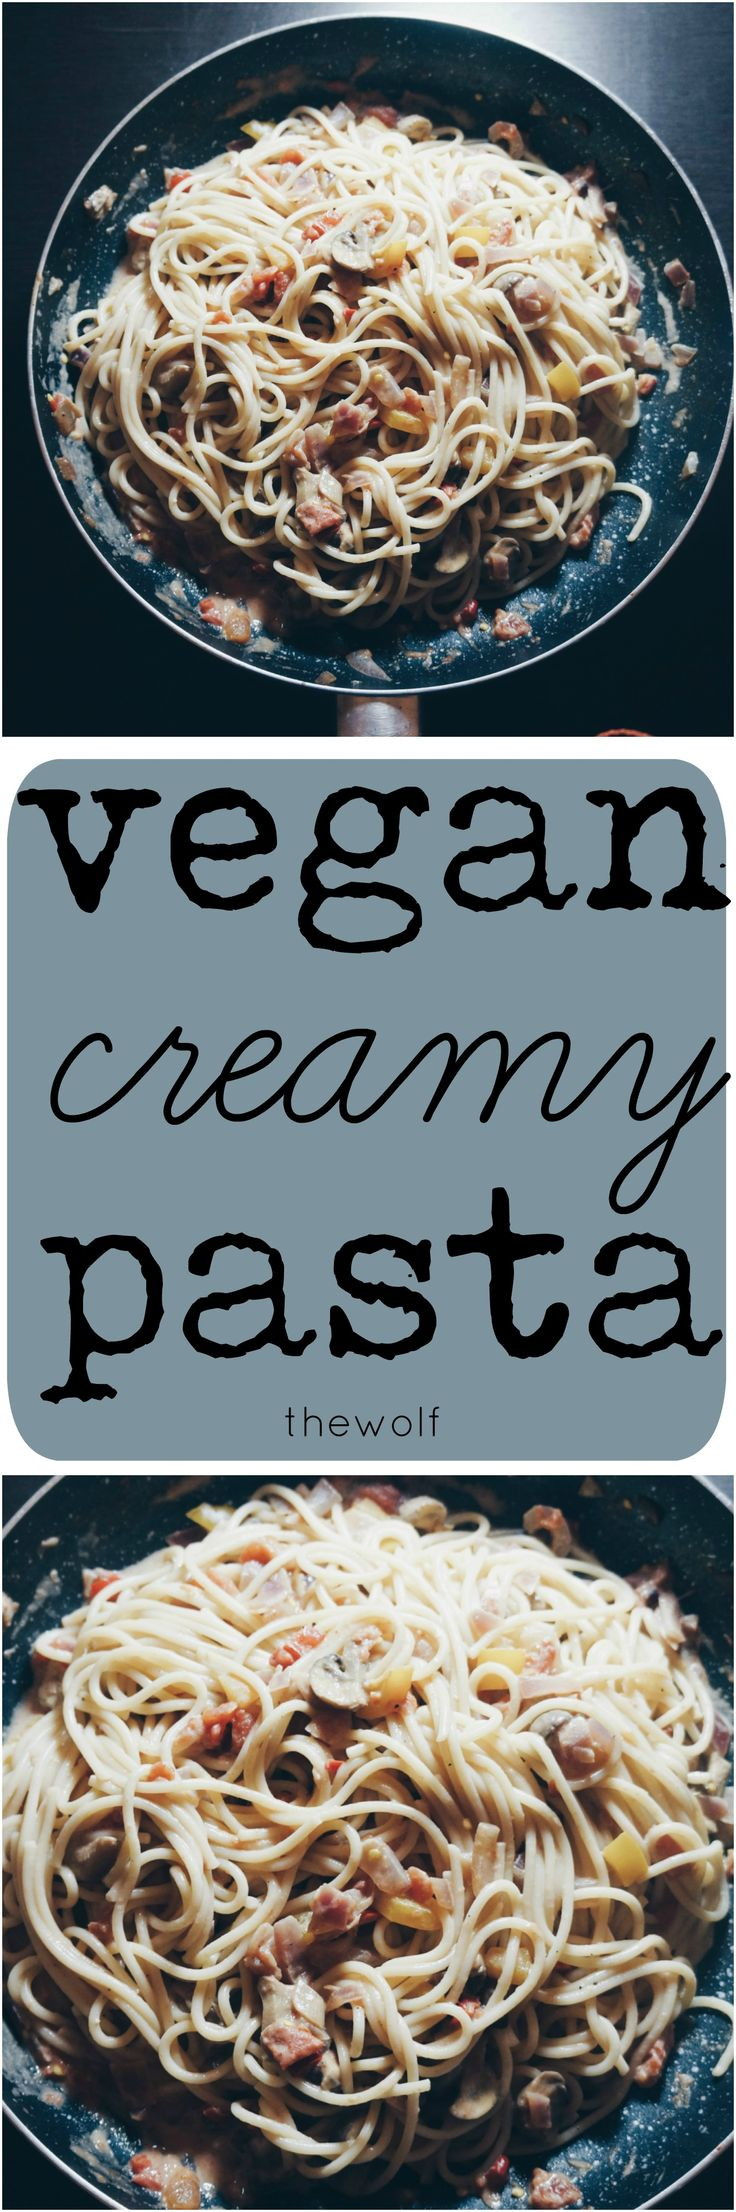 An easy recipe for creamy vegan pasta that anyone can make!